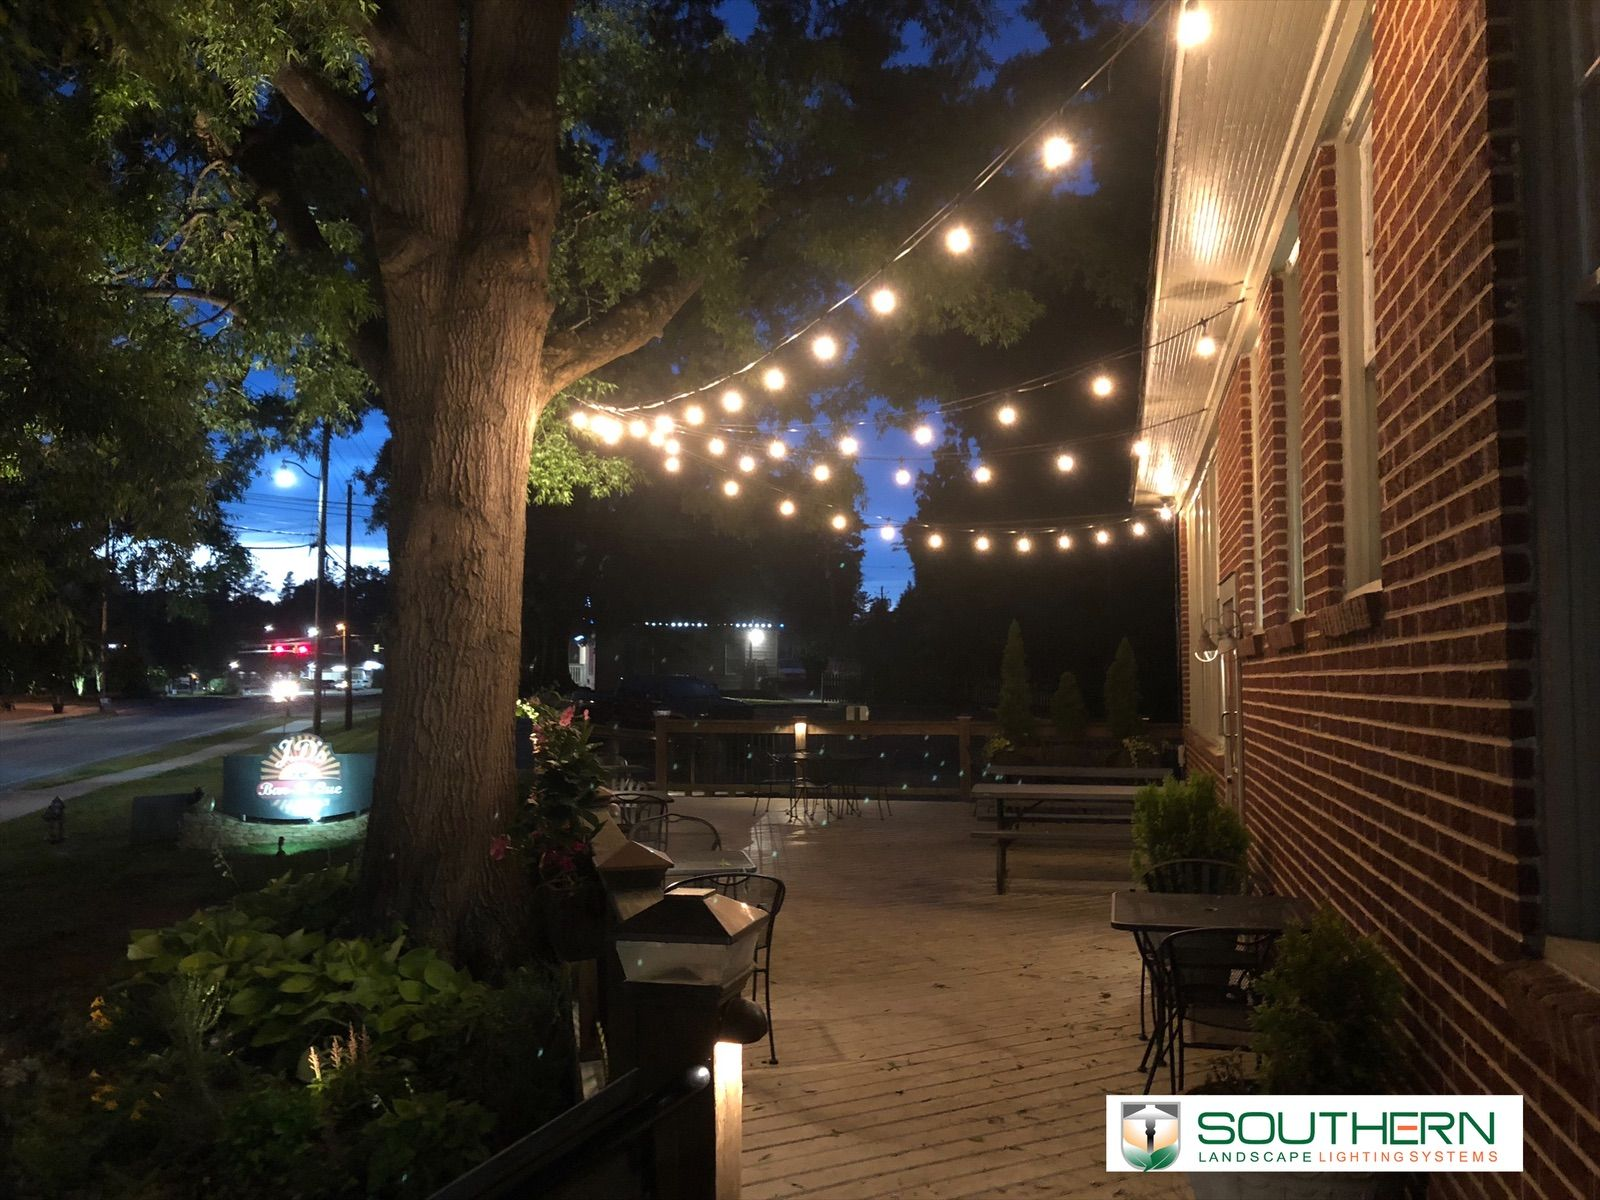 2 Reasons To Choose High Quality Copper Outdoor Lighting Fixtures With Images Copper Outdoor Lighting Outdoor Light Fixtures Outdoor Lighting